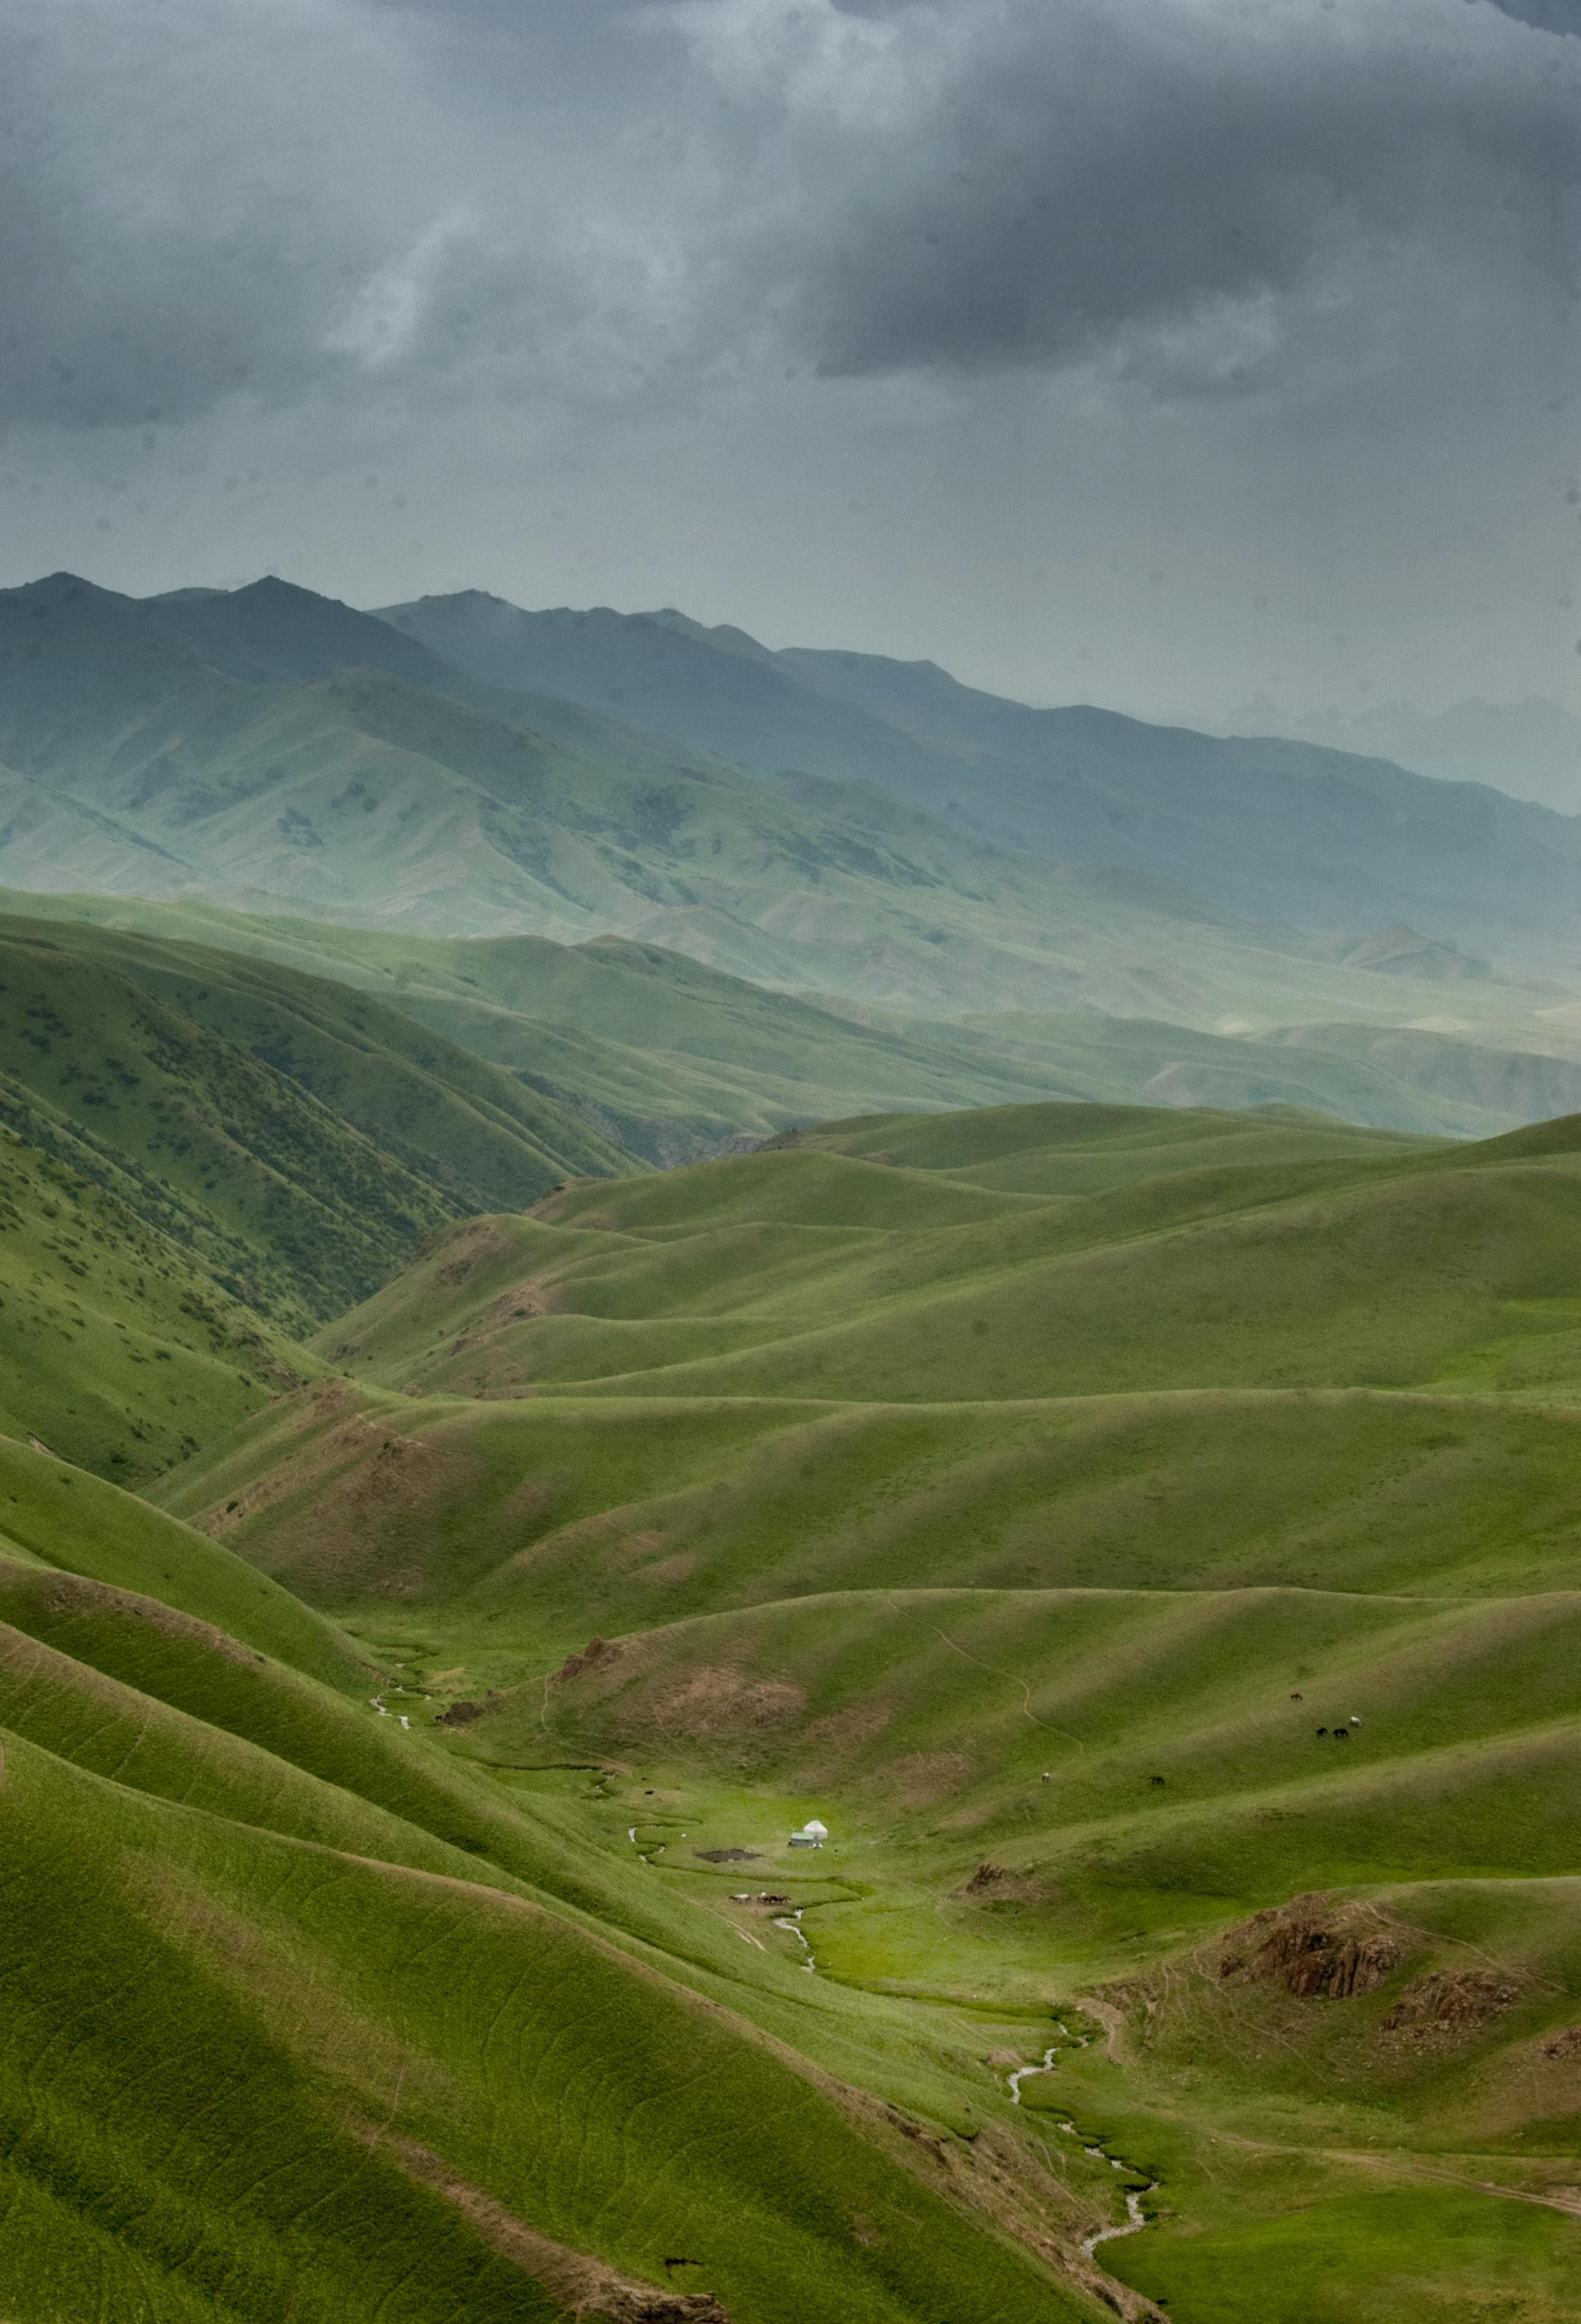 Let's Experience the Life of the Silk Roads Nomads - rerun starting at Kyrgyzstan